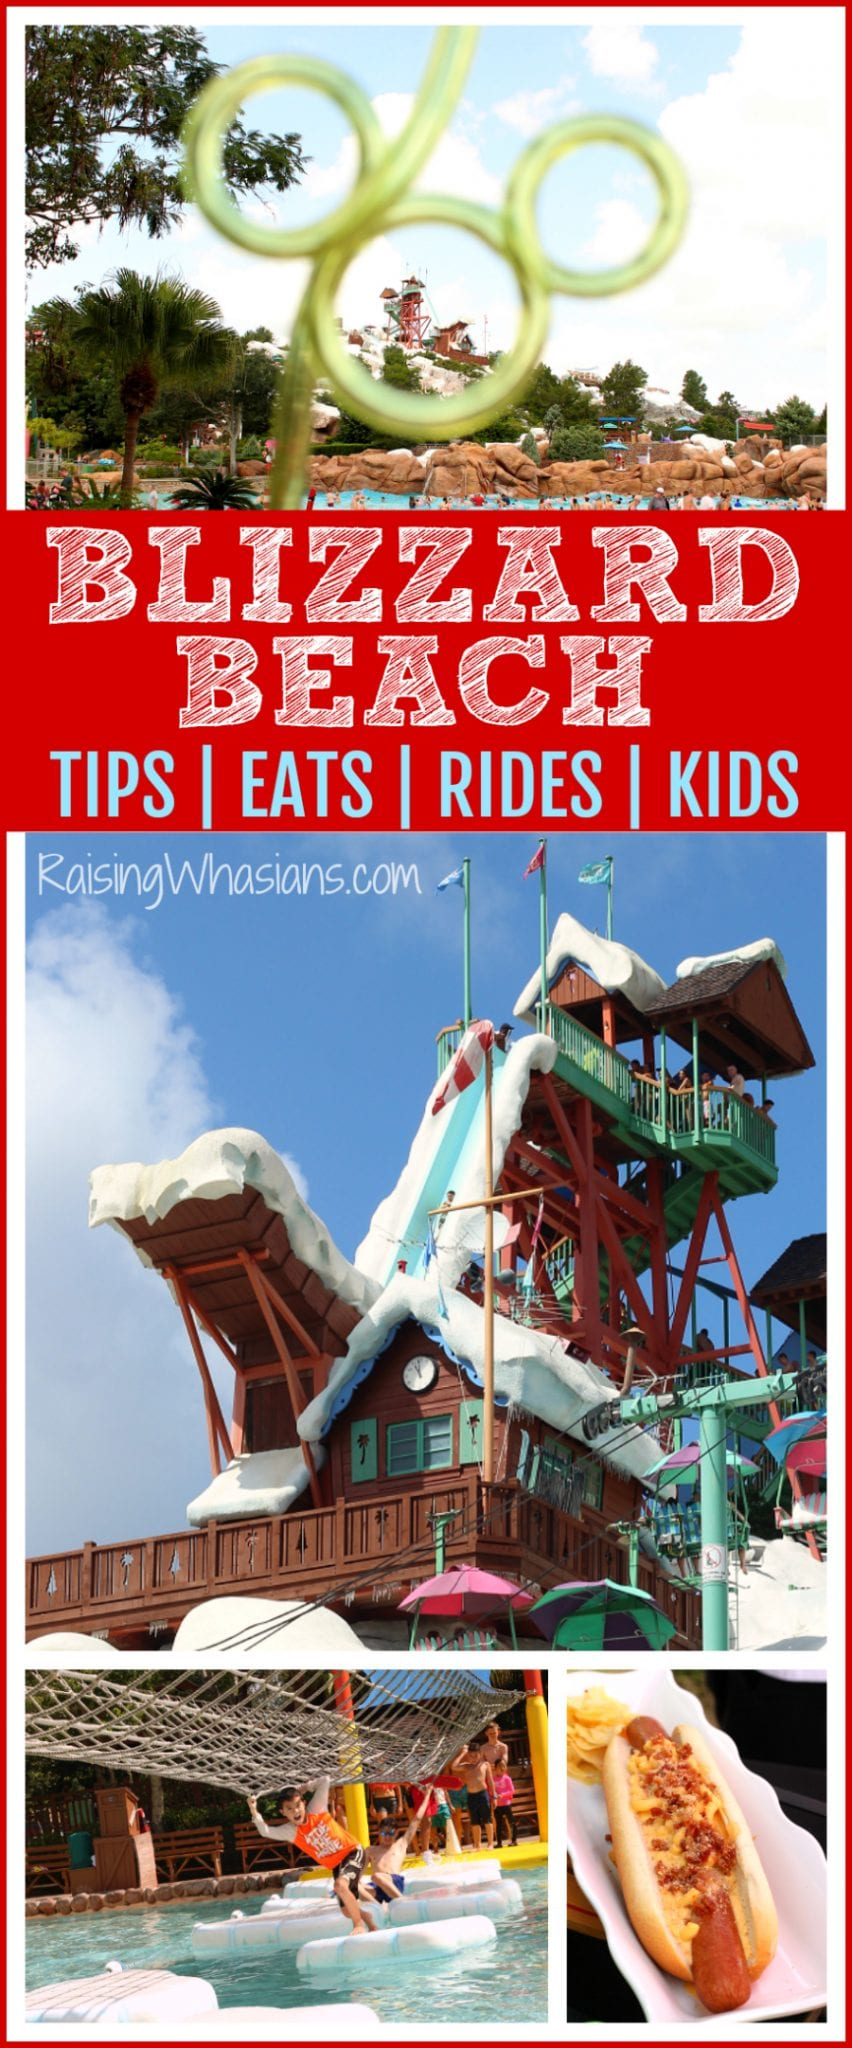 Blizzard beach tips eats